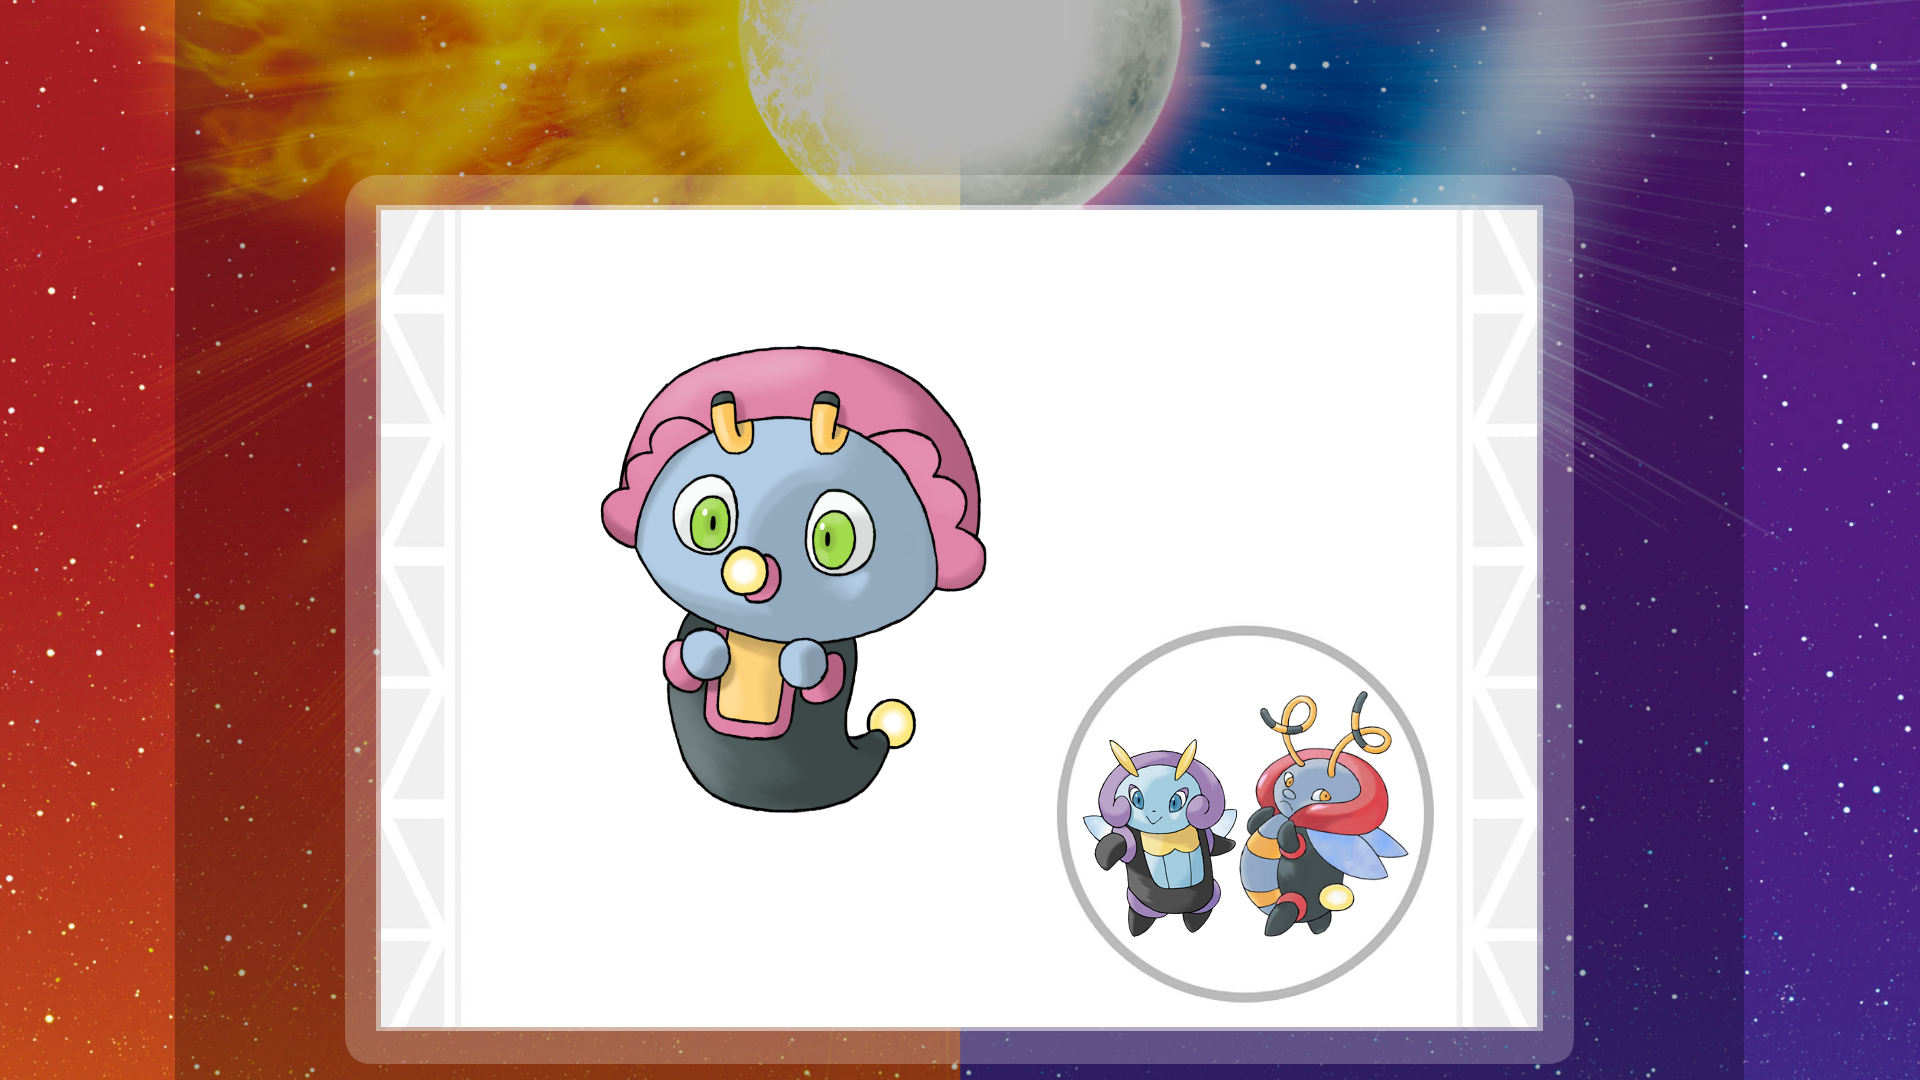 Illumise and Volbeat Prevo